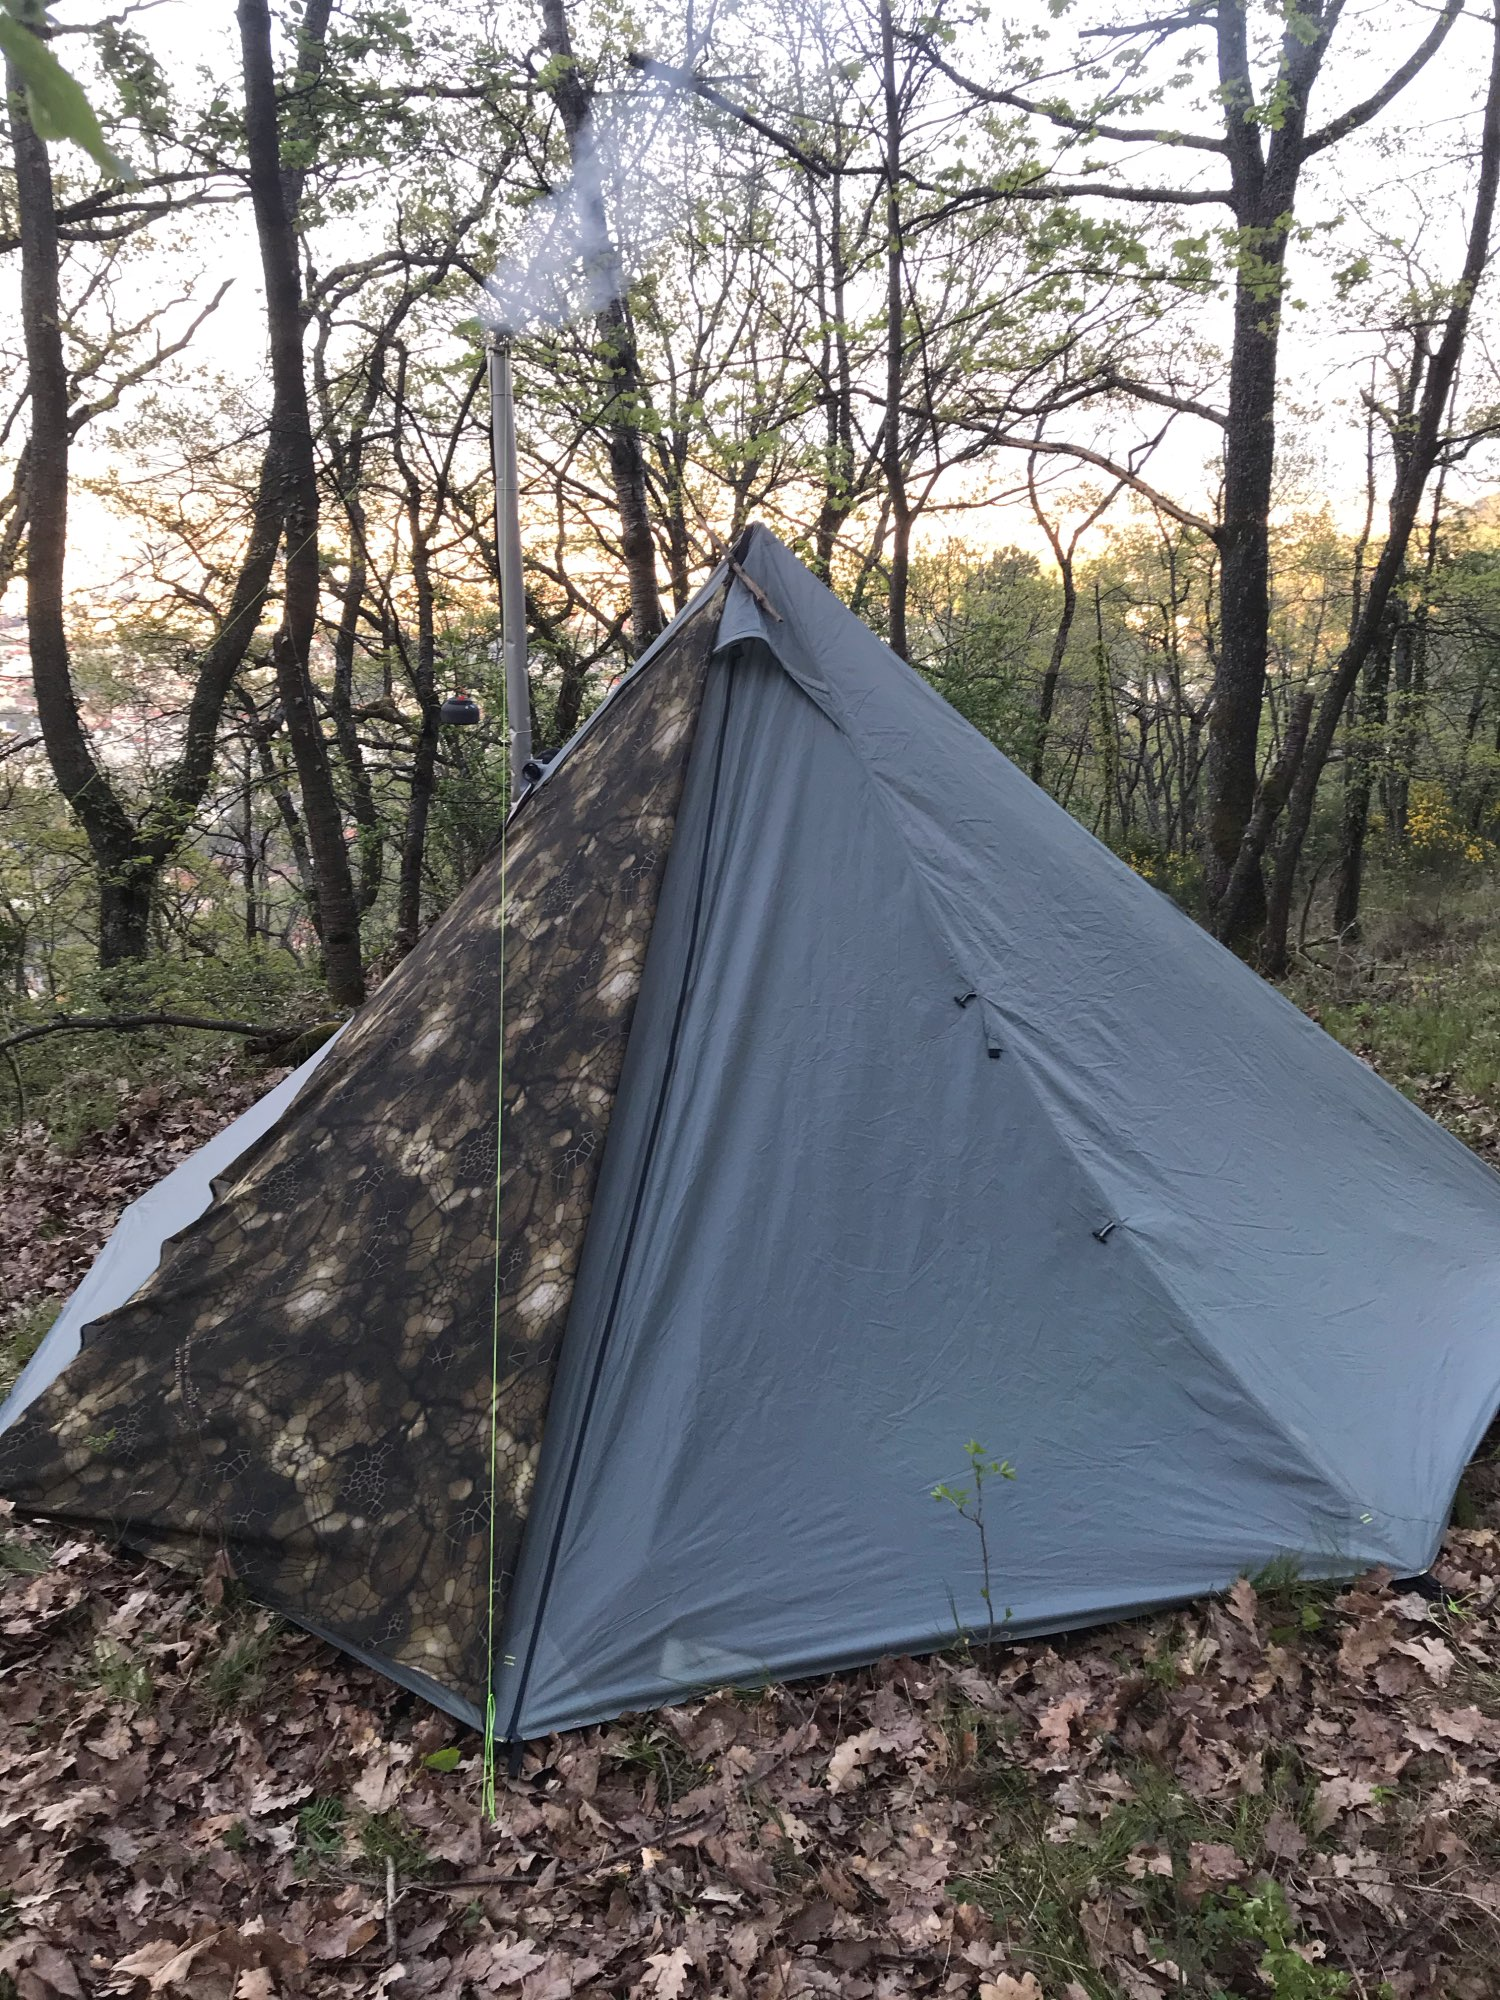 Aricxi 3-4 Person Ultralight Outdoor Camping Teepee 20D Silnylon Pyramid Tent Large Rodless Tent Backpacking Hiking Tents